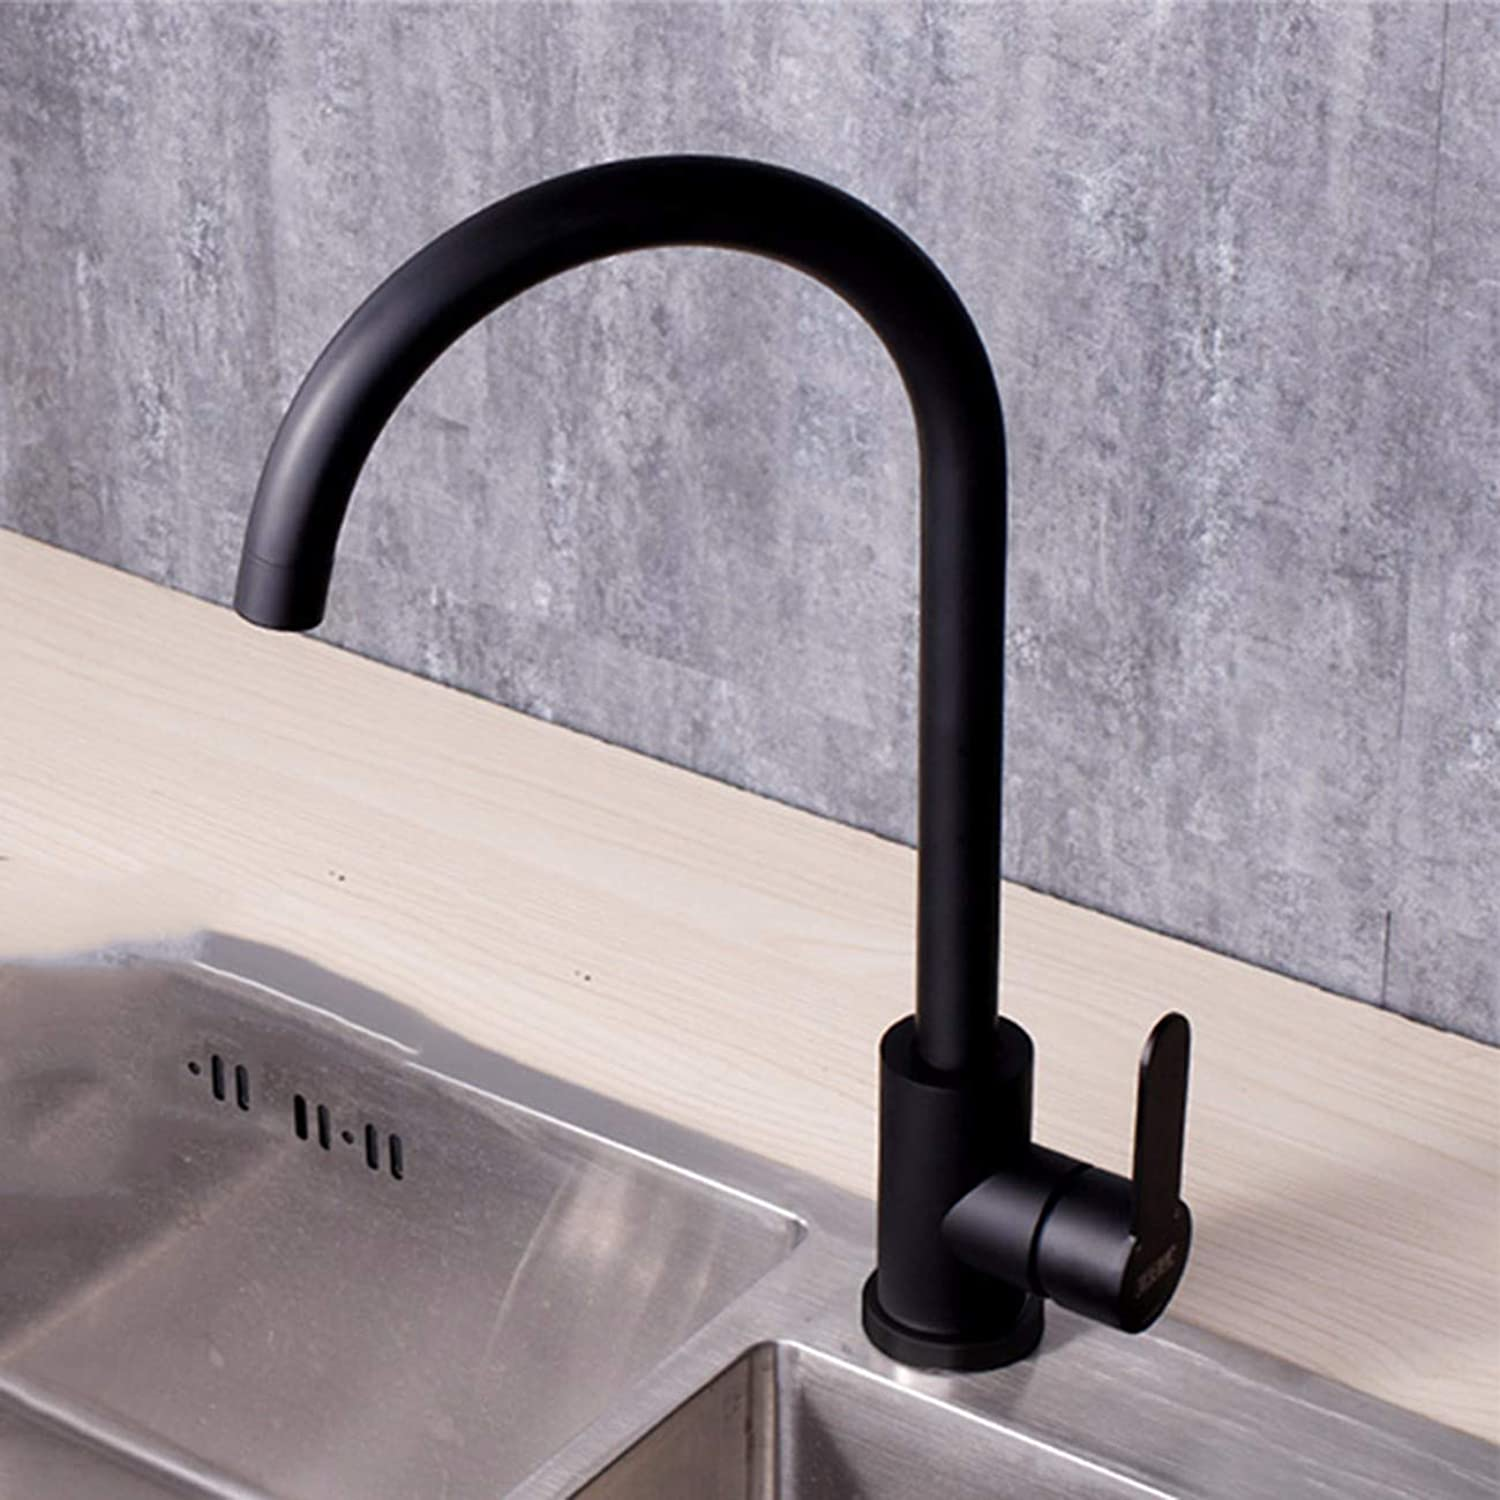 Kitchen tap Stainless Steel Hot And Cold Water Faucet Kitchen Sink Wash Basin Paint Baking Black Black Matte Grind,C